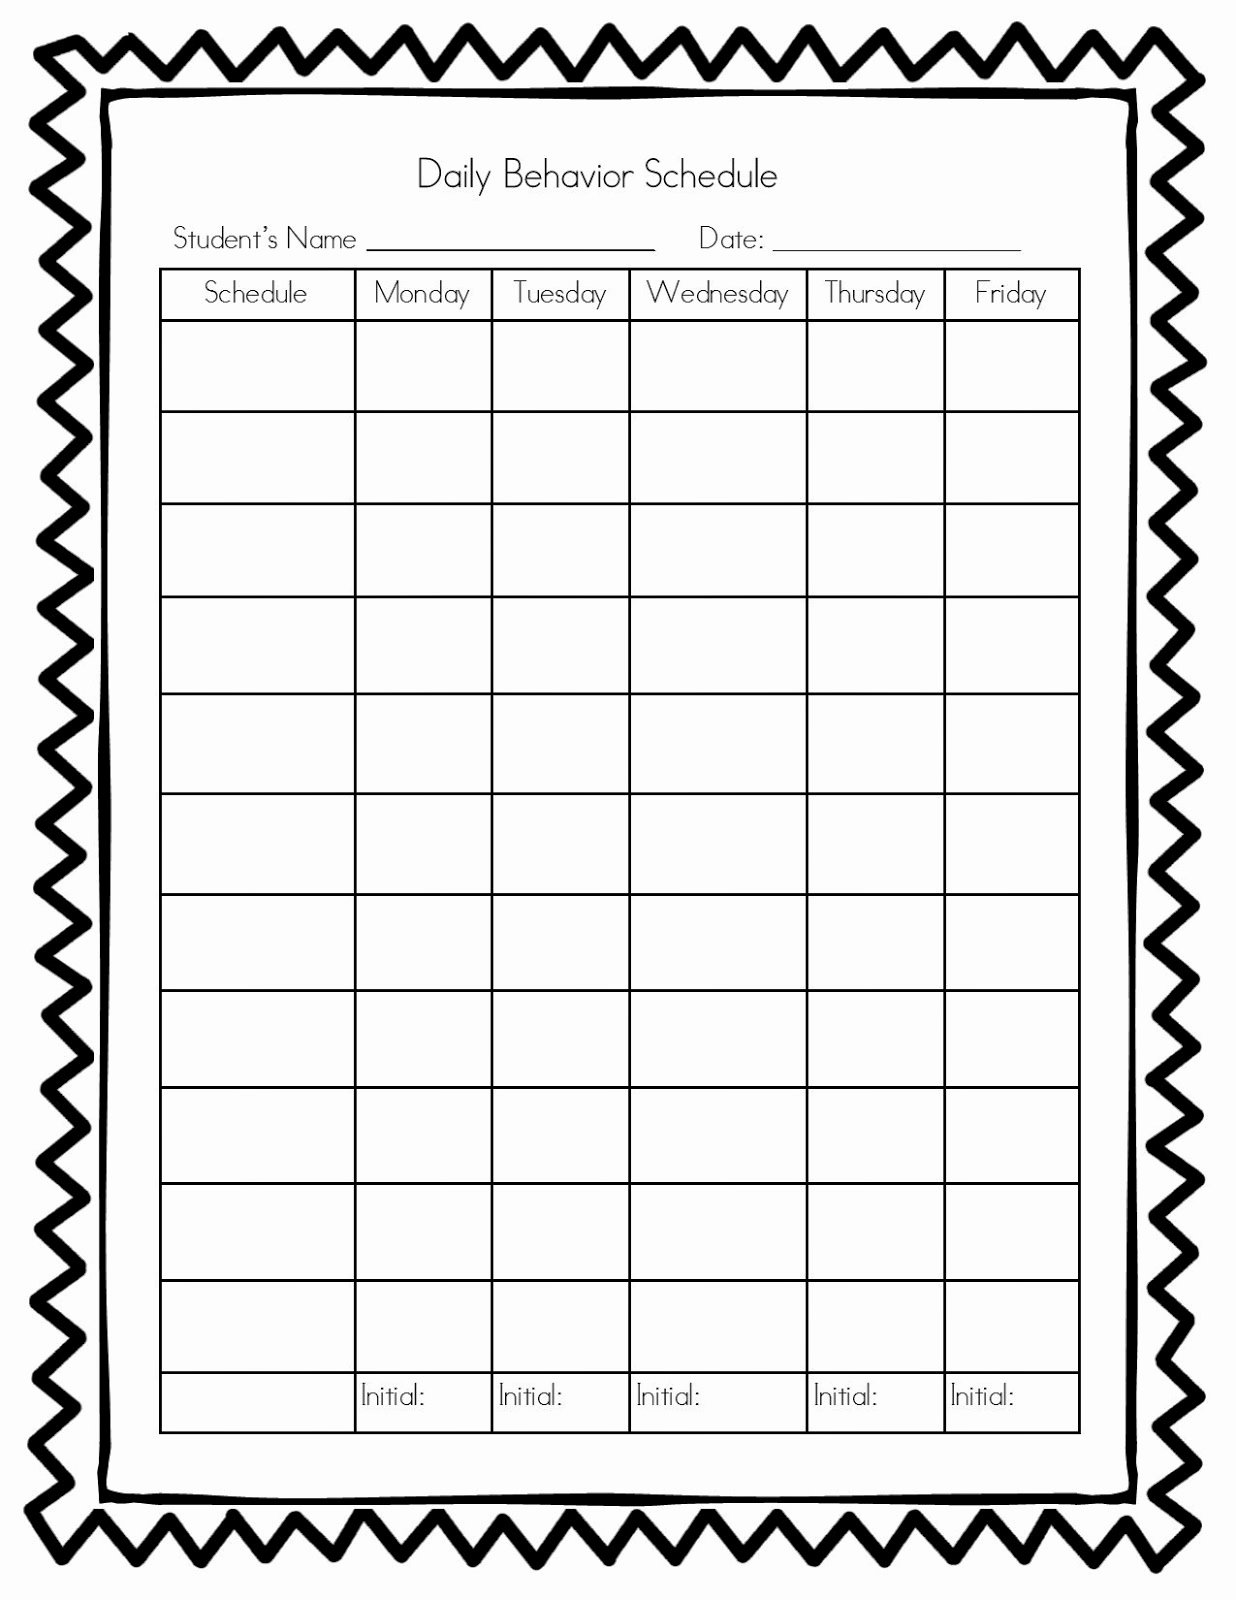 Teachers R Us Classroom Management Behavior Chart